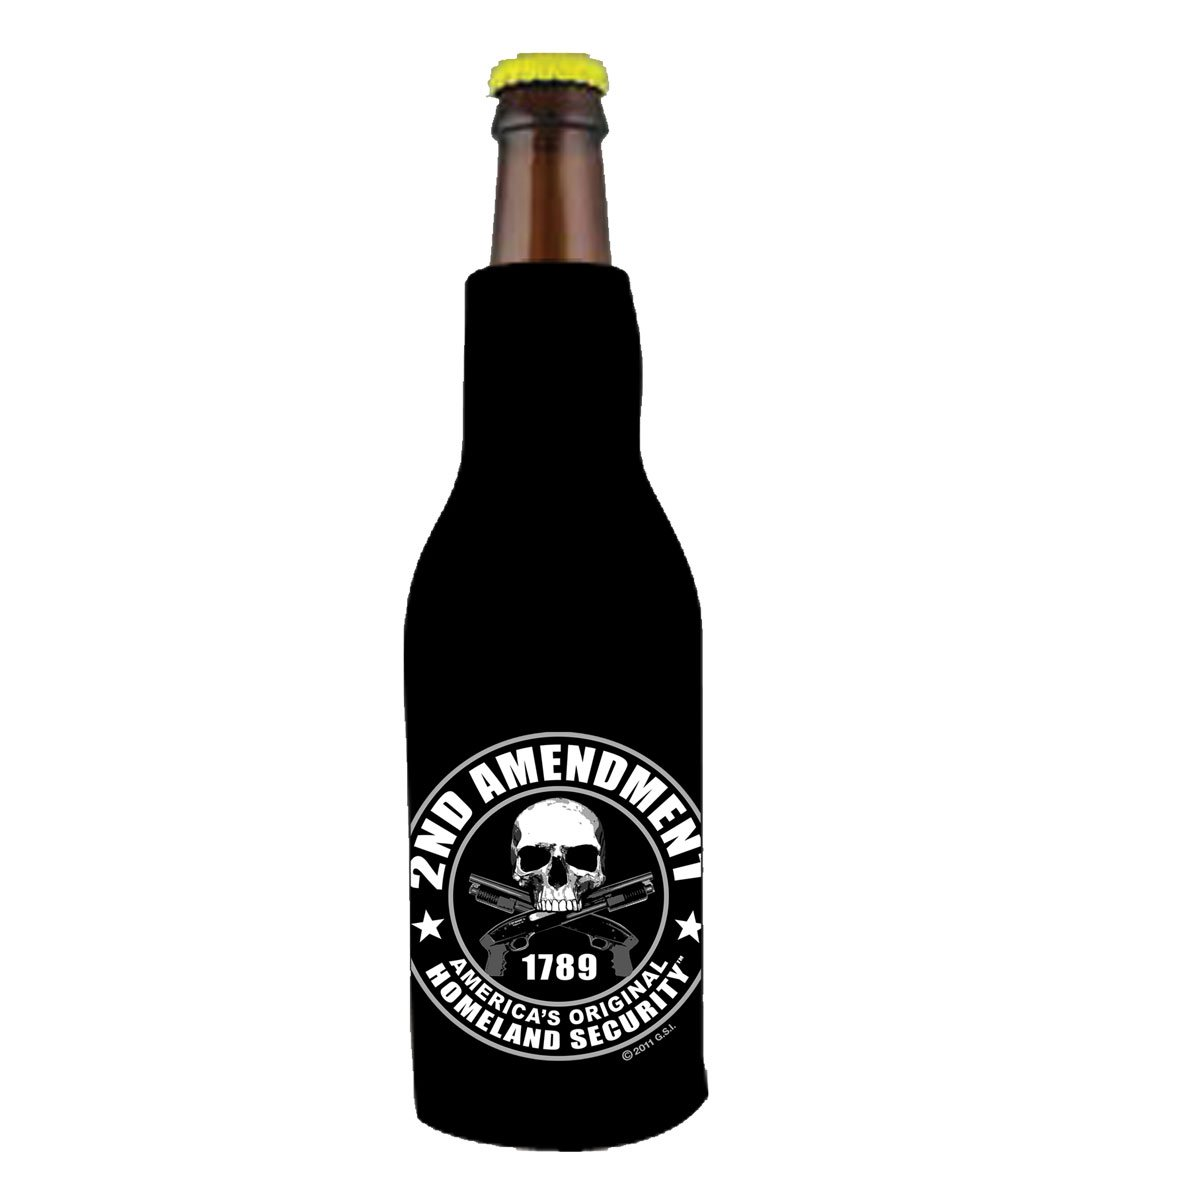 Hot Leathers, Officially Licensed, Drink Bottle Wrap Sleeve (2nd Amendment 1789 America's Original Homeland Security)